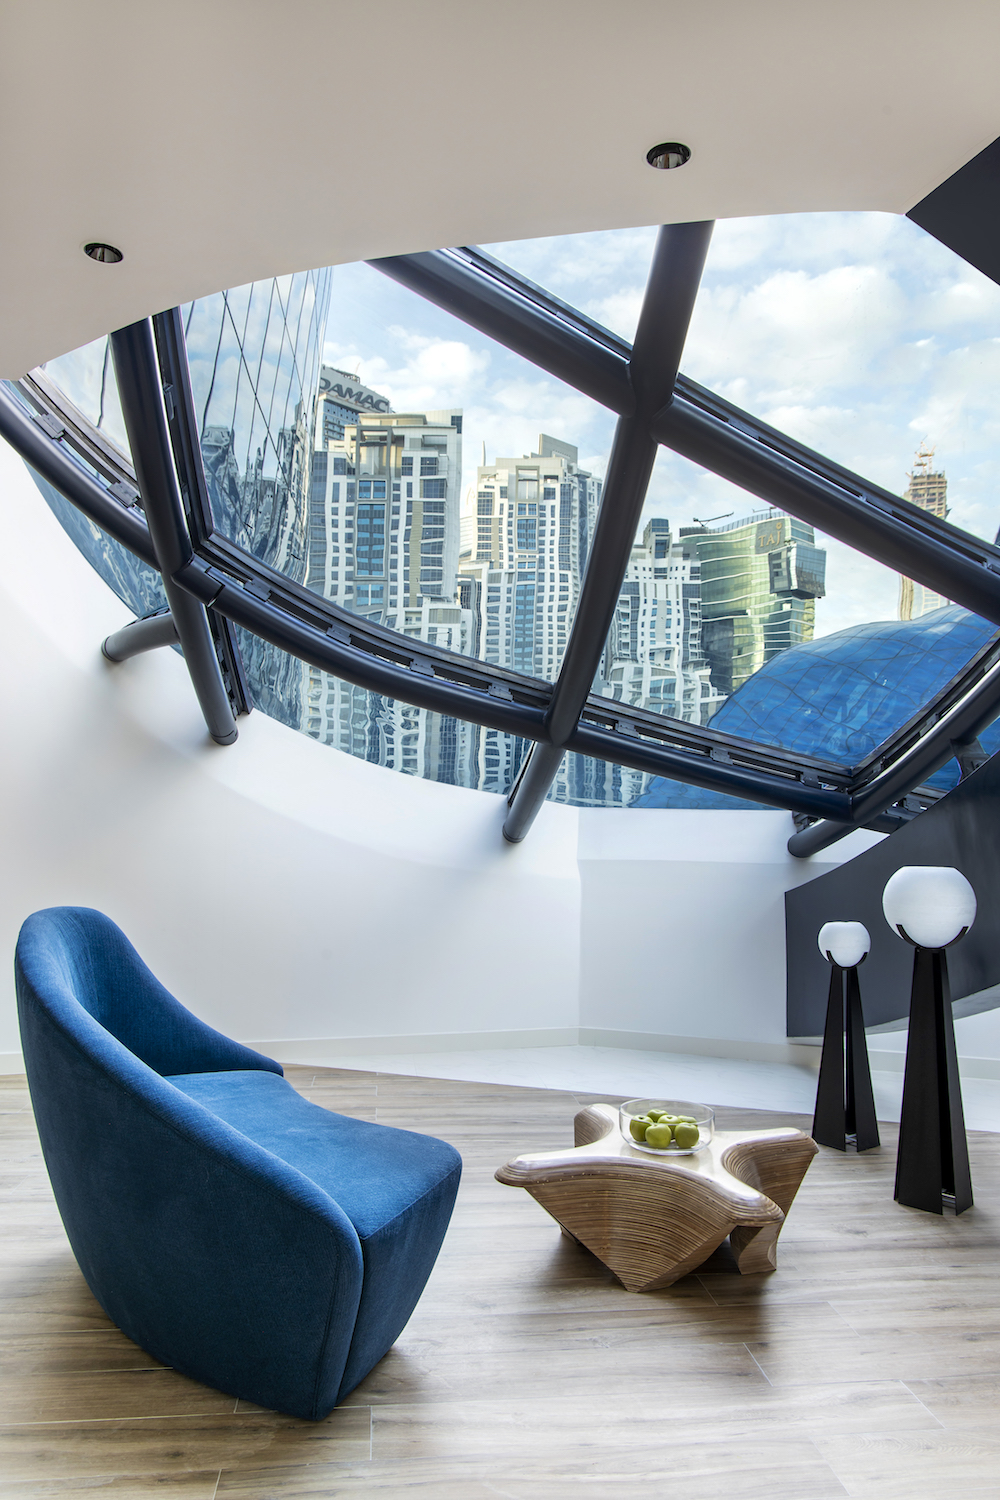 A blue chair next to fluid window designed by Zaha Hadid